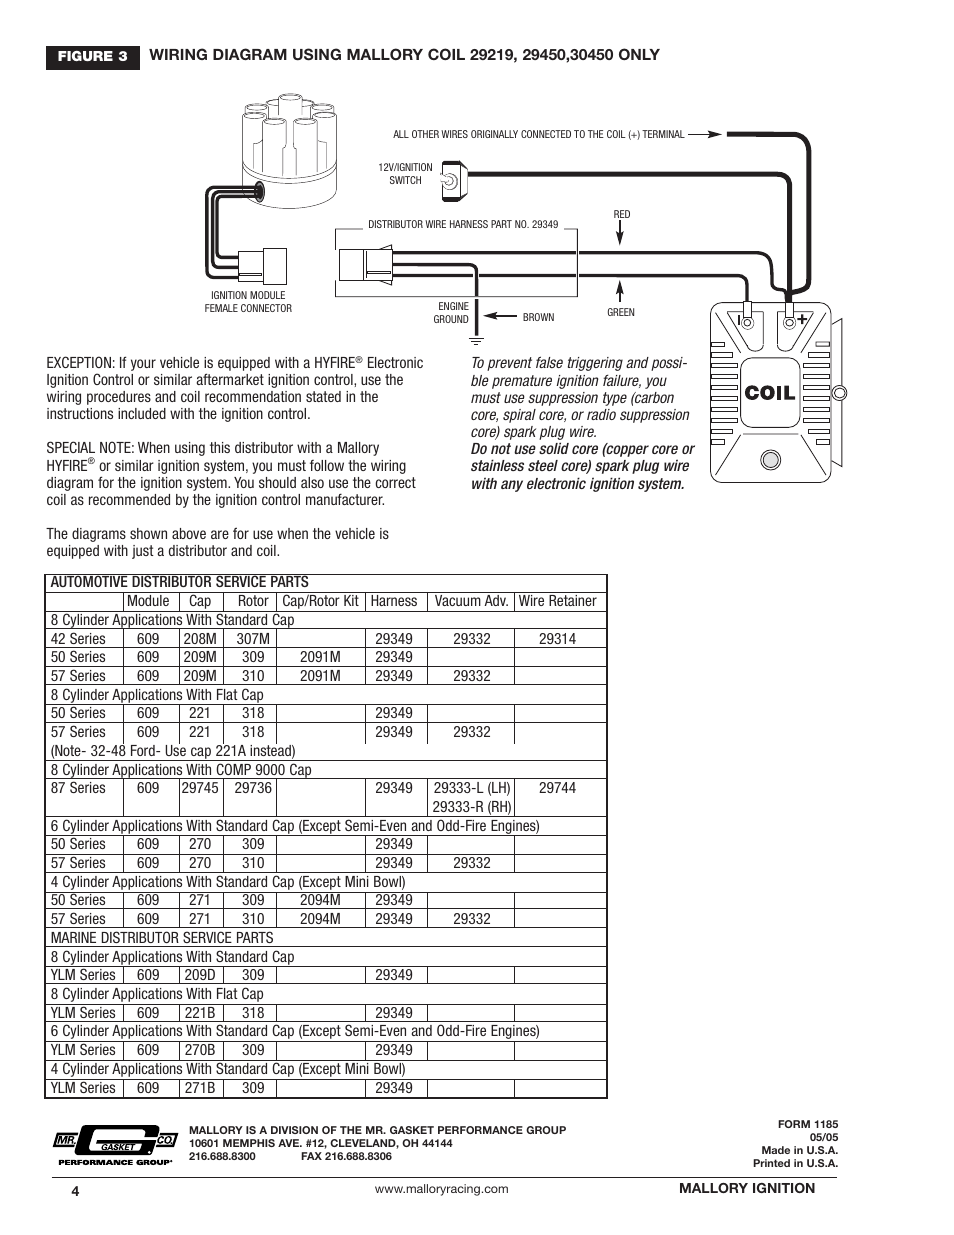 Inspiring Mallory Hyfire Wiring Diagram septic field diagram on mallory gauges, mallory battery, mallory resistors, mallory electronics, mallory furniture,